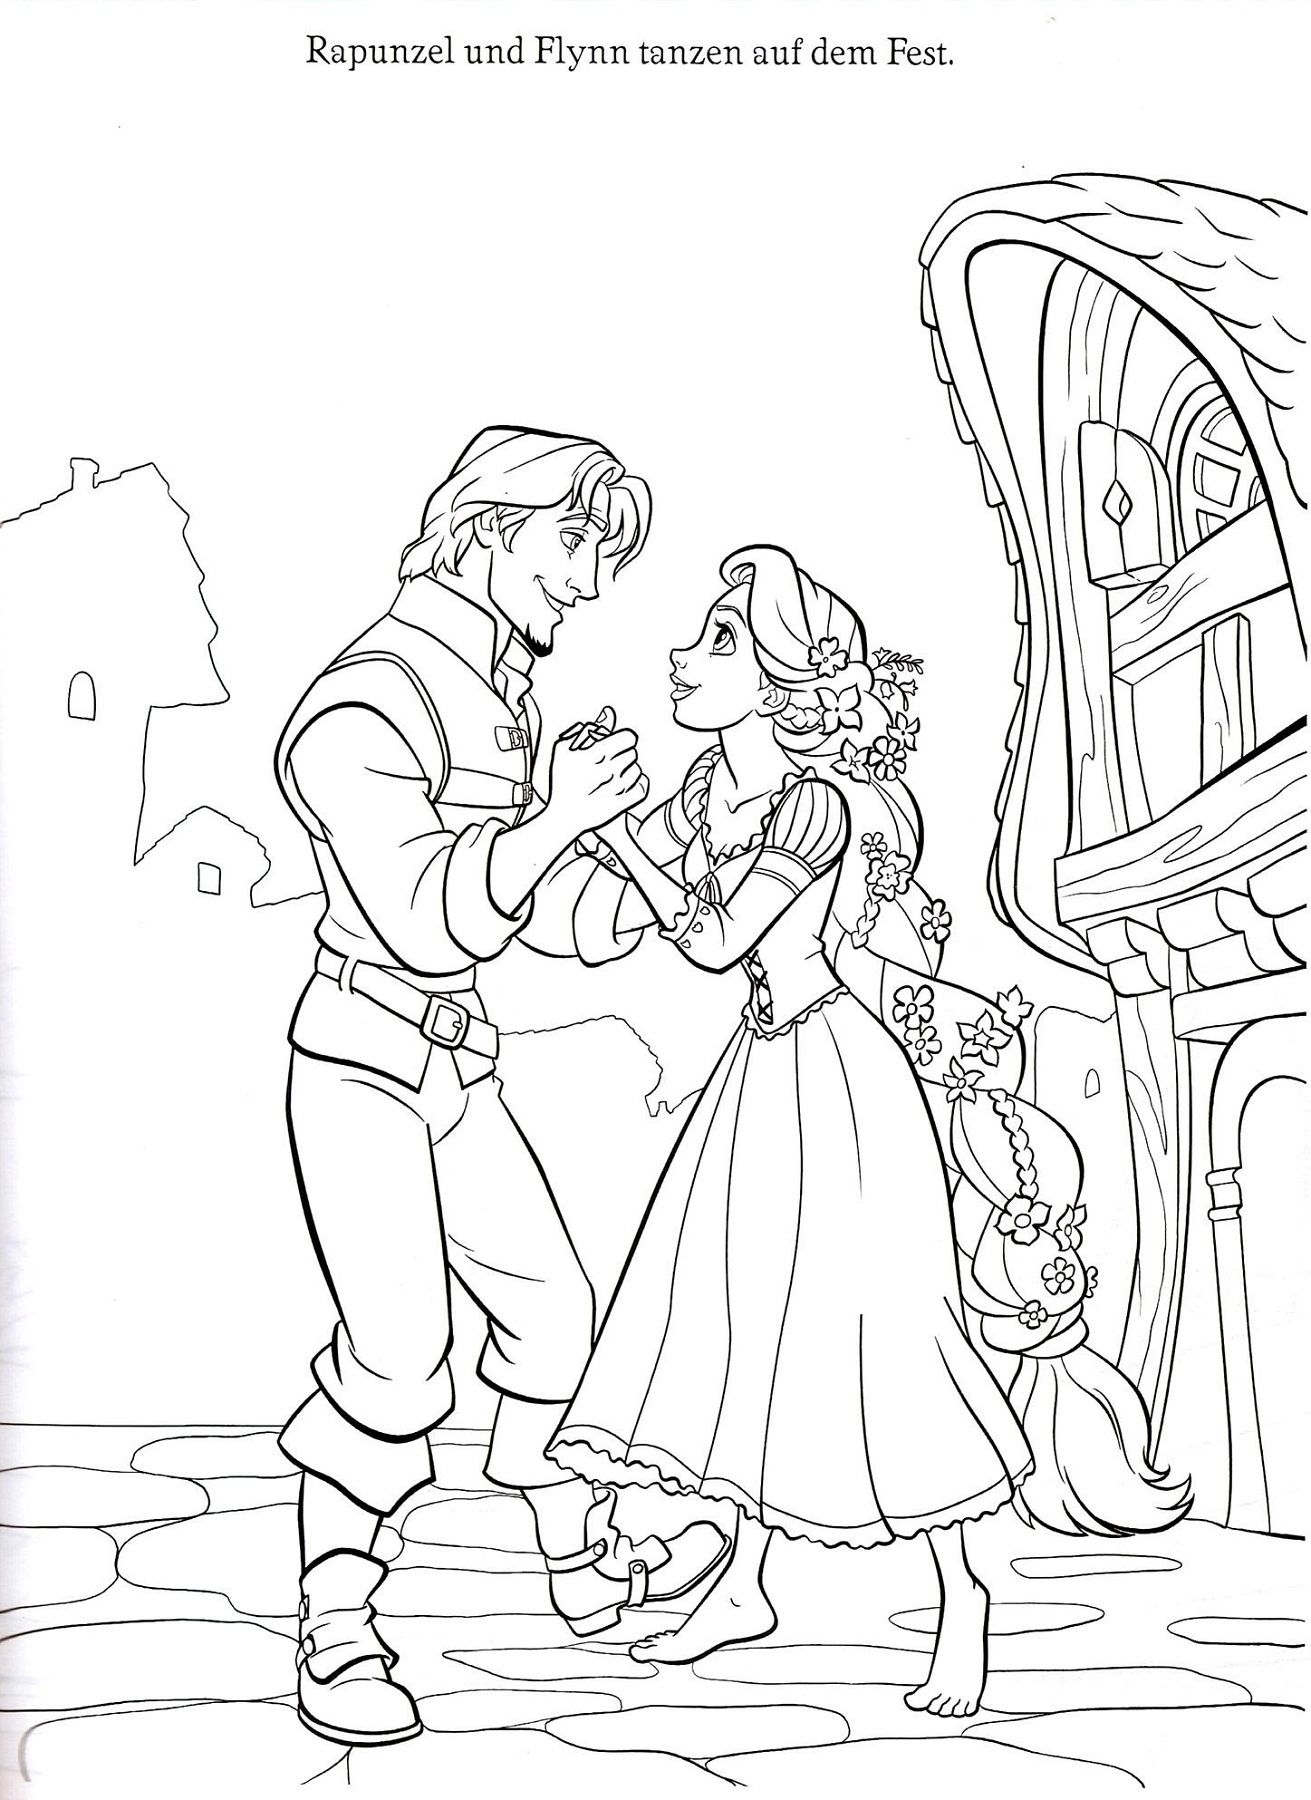 Rapunzel Color Pages To Print Rapunzel Coloring Pages Disney Princess Coloring Pages Tangled Coloring Pages